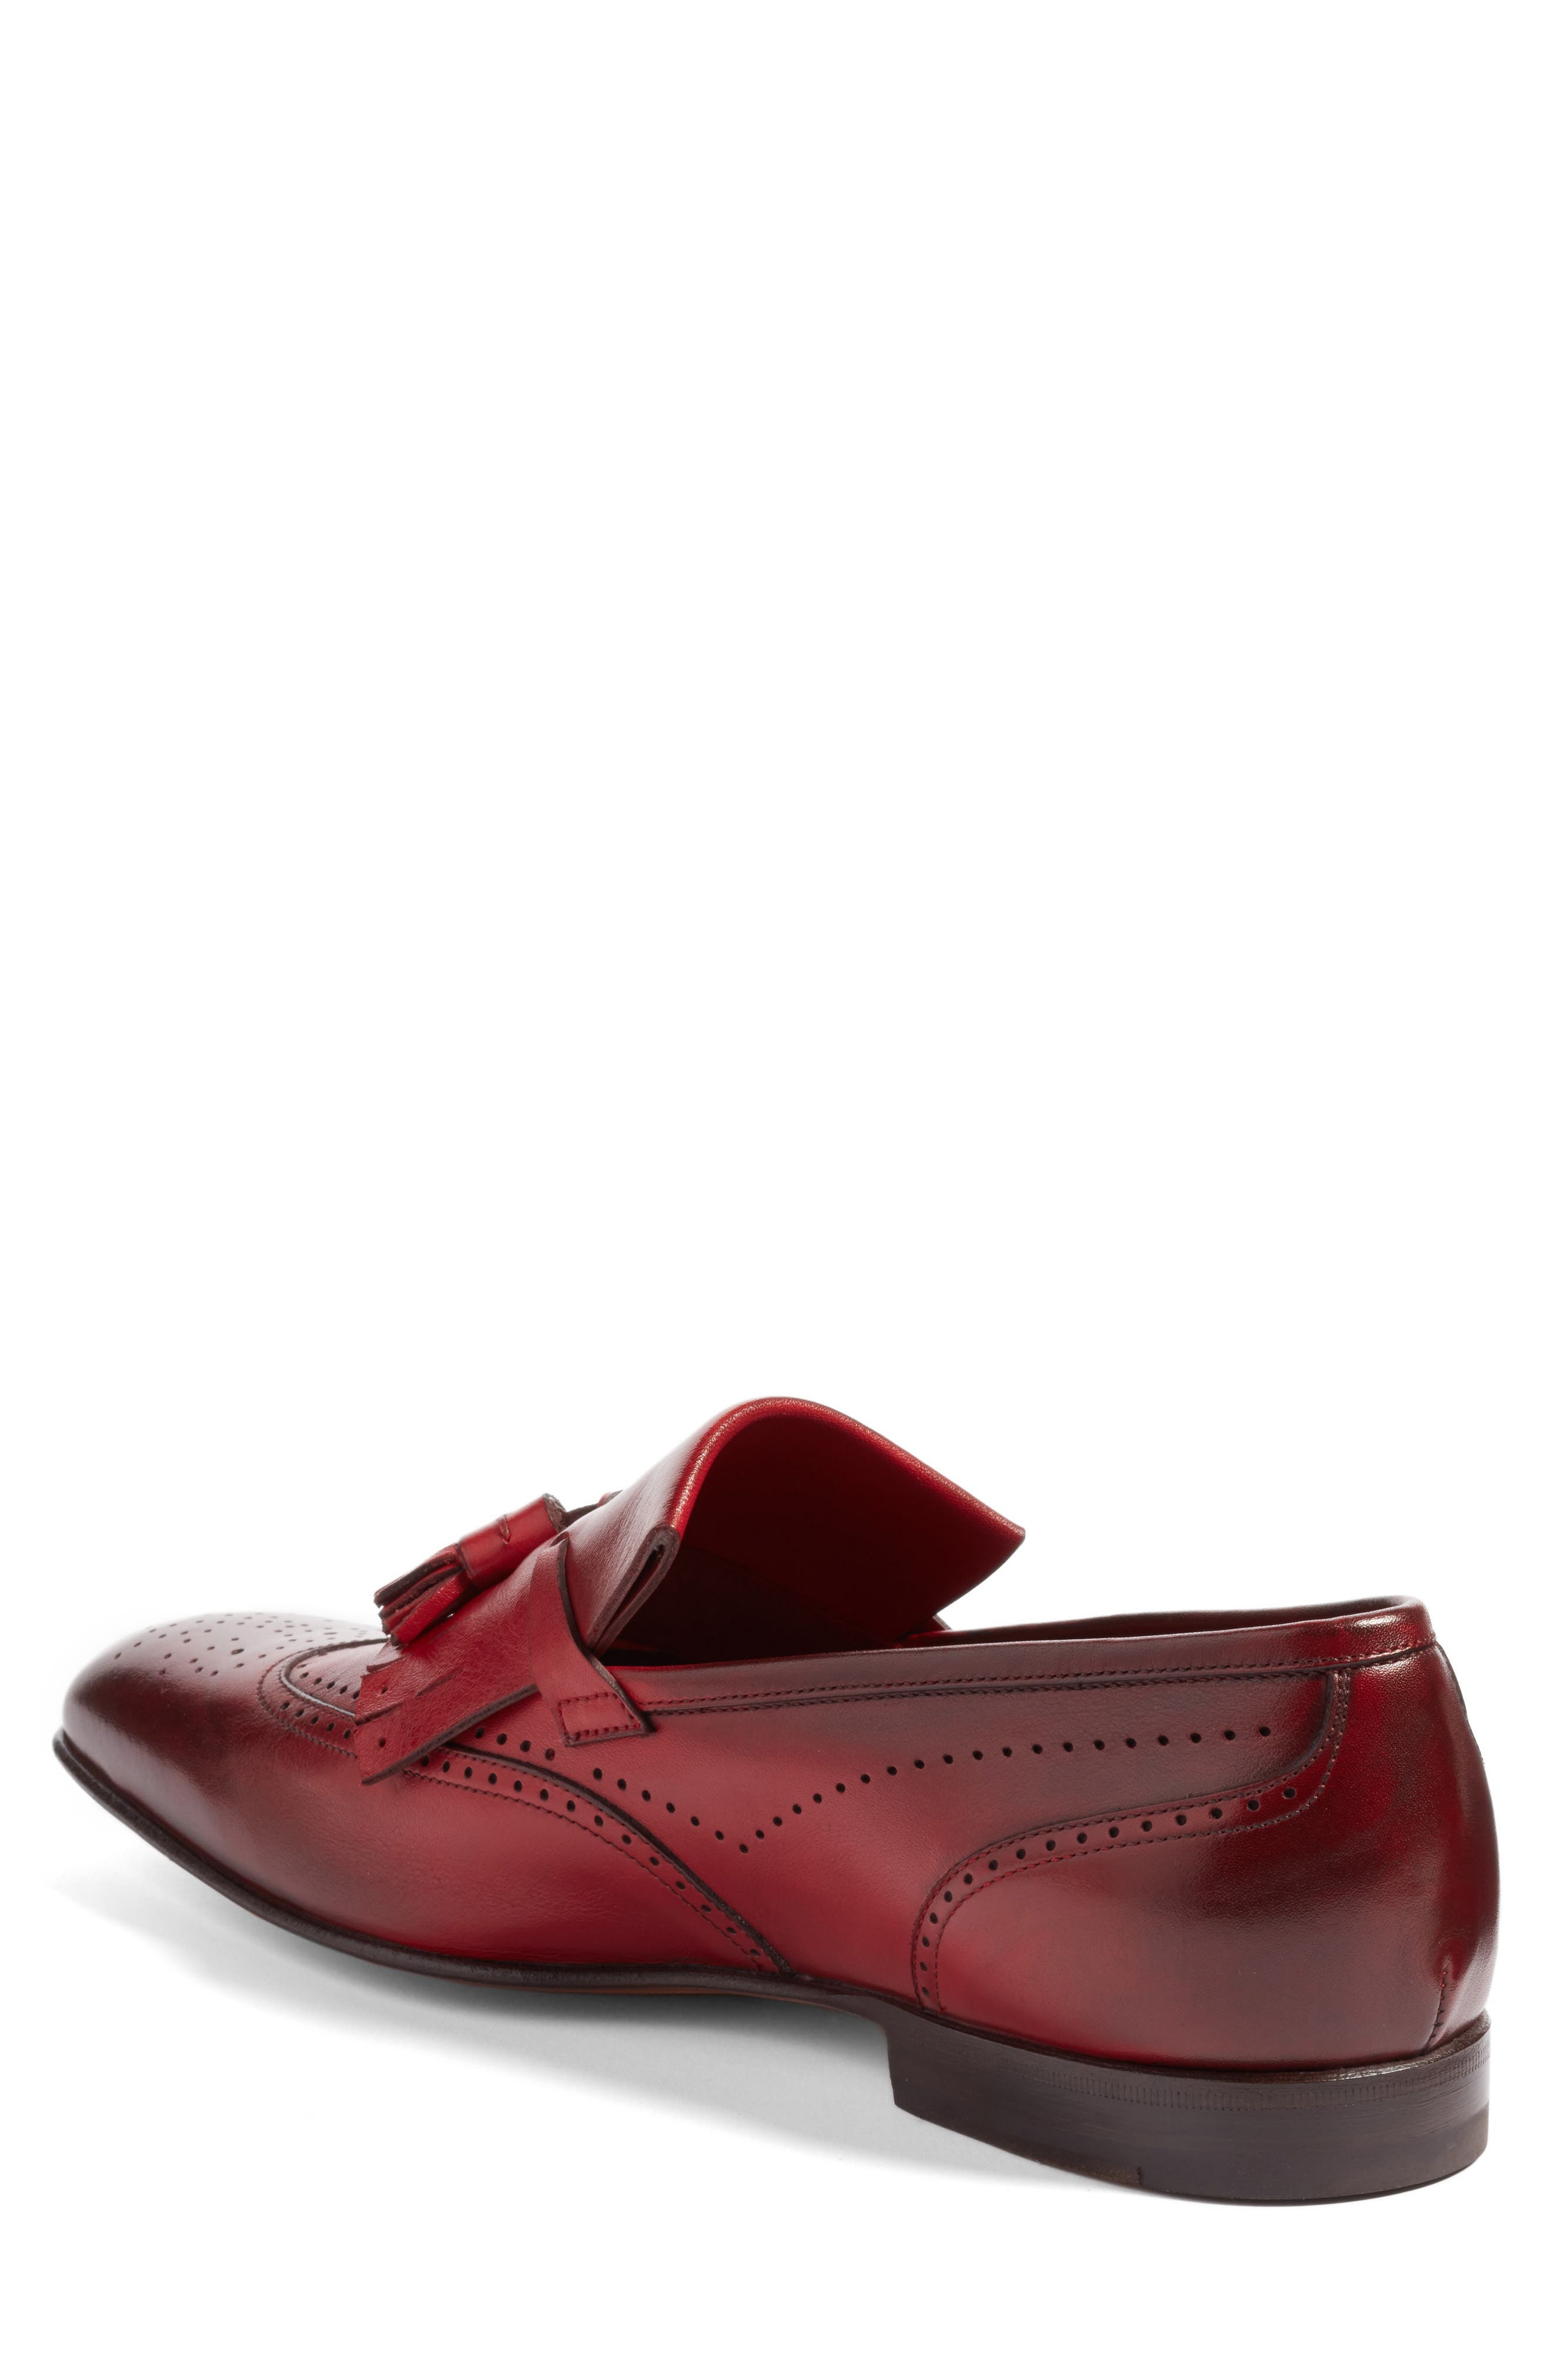 Floyd Tassel Wingtip Loafer,                             Alternate thumbnail 2, color,                             930